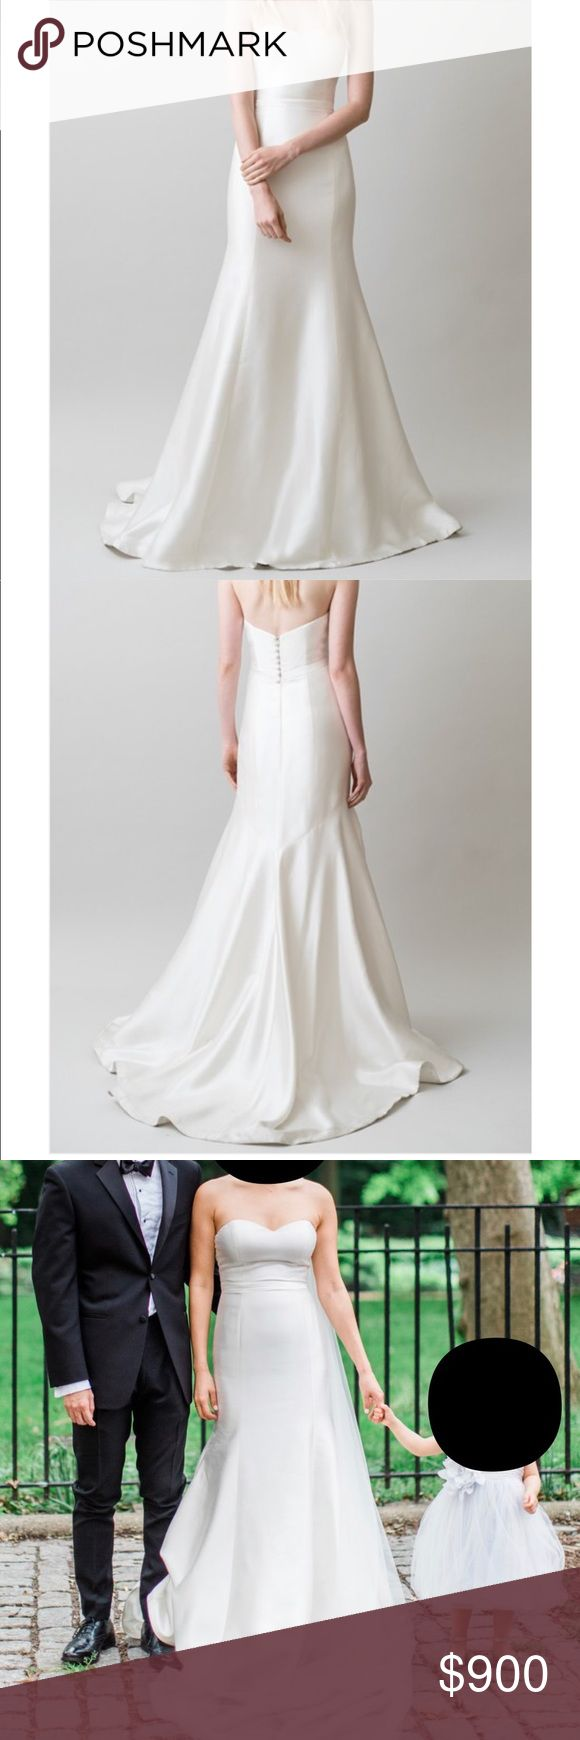 """Jenny Yoo London Bridal Gown Silk Mikado strapless wedding gown. Fully lined and cups have been added. Very simple and can be adorned with a sash, belt, crown.  The dress is originally a size 6. My measurements are 35"""" bust, 27"""" waist, 36"""" hips and height 5'7"""" (wore 3.5"""" heels)  The gown has been professionally cleaned and preserved. Jenny Yoo Dresses Wedding"""